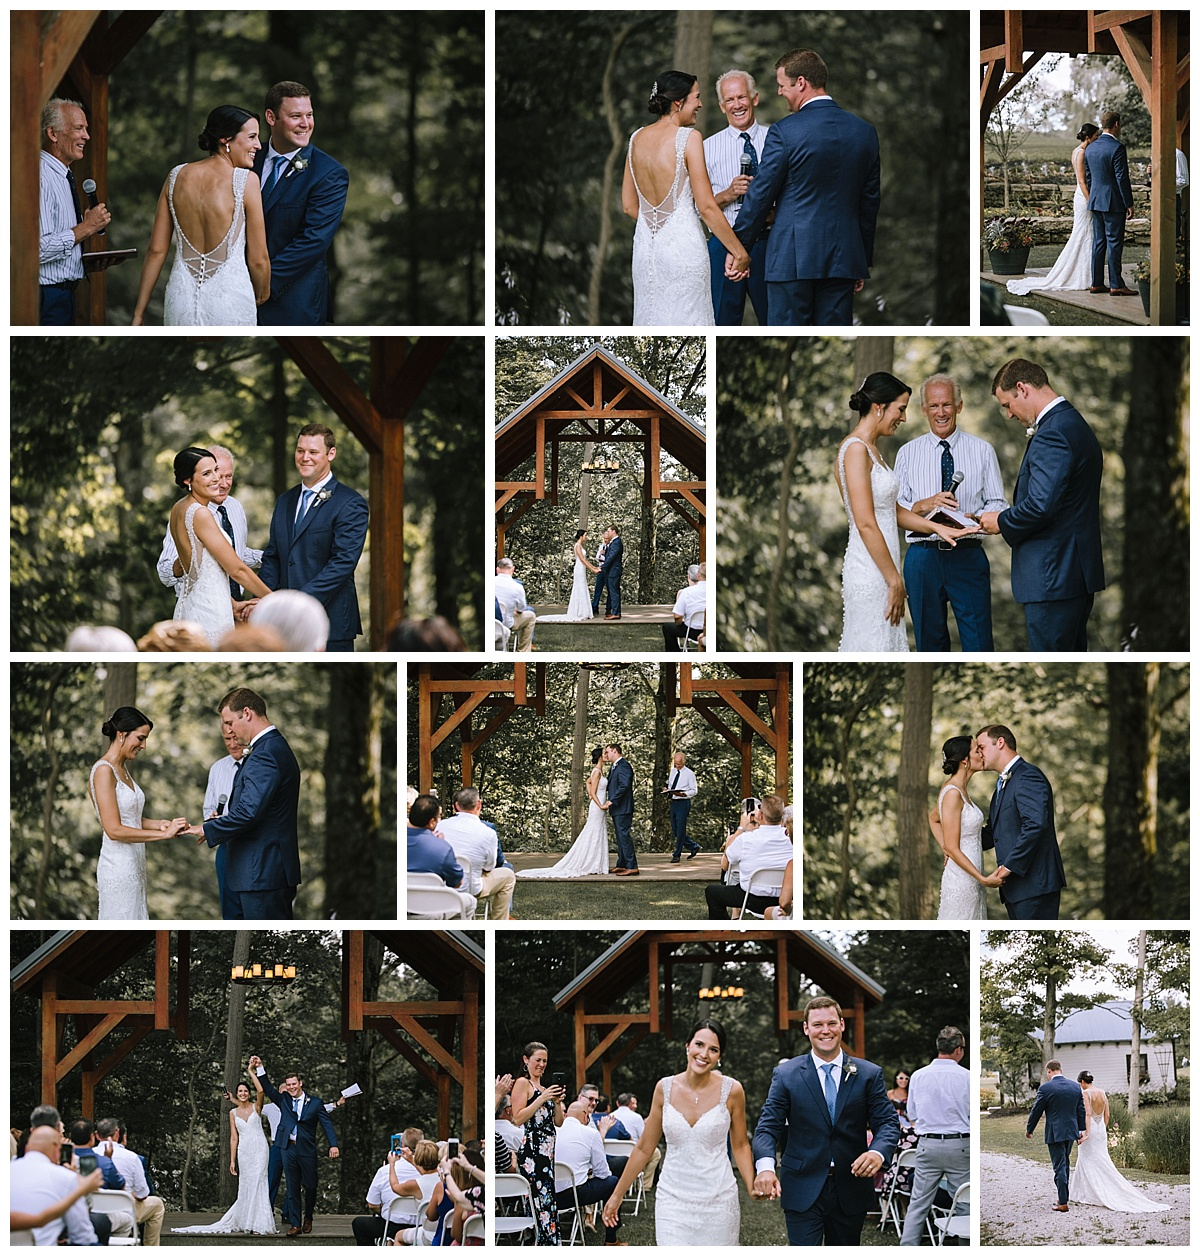 Meadow Ridge Events - Northeast Ohio Wedding Photographer - Lindsay Dawn Photography